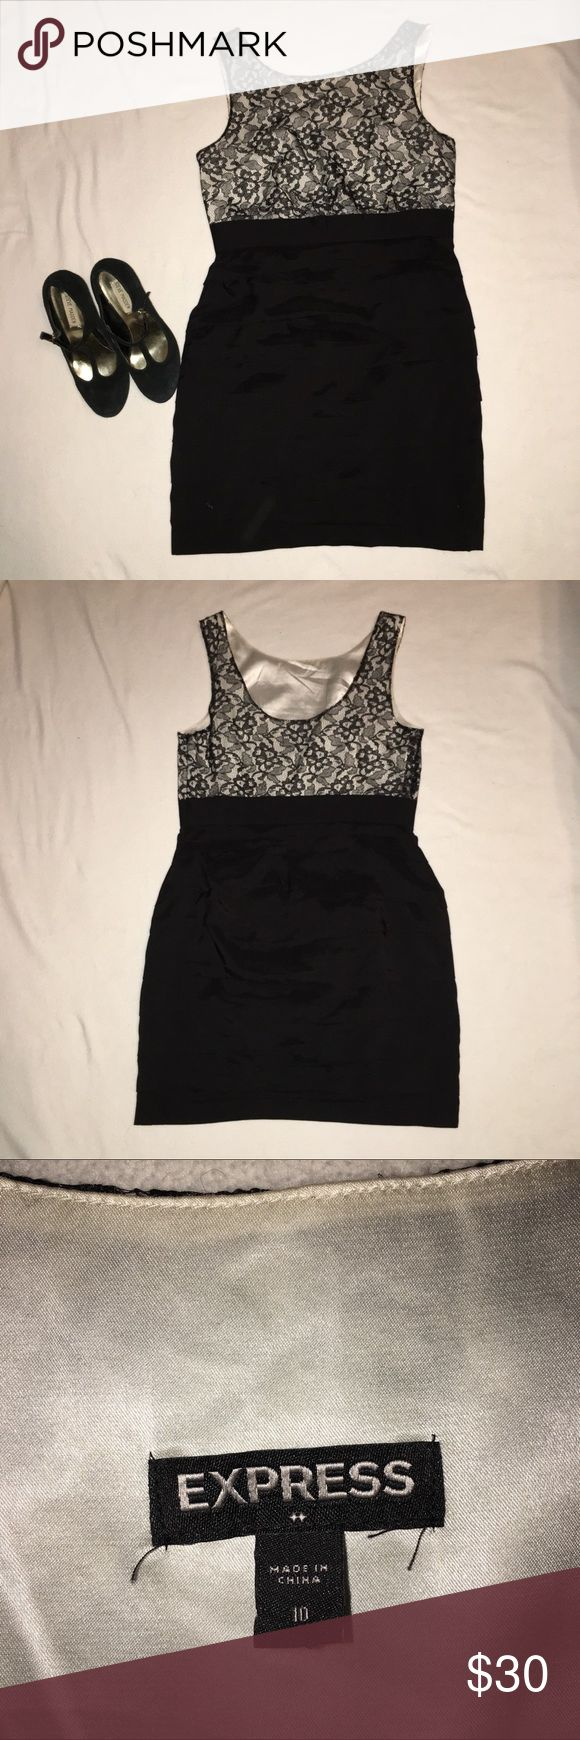 Express ruched dress size 10 Black lace on top with black ruching on the bottom. Very figure flattering,especially if you are more curvy. Side zip closure. Size 10. Hits just above the knee. Express Dresses